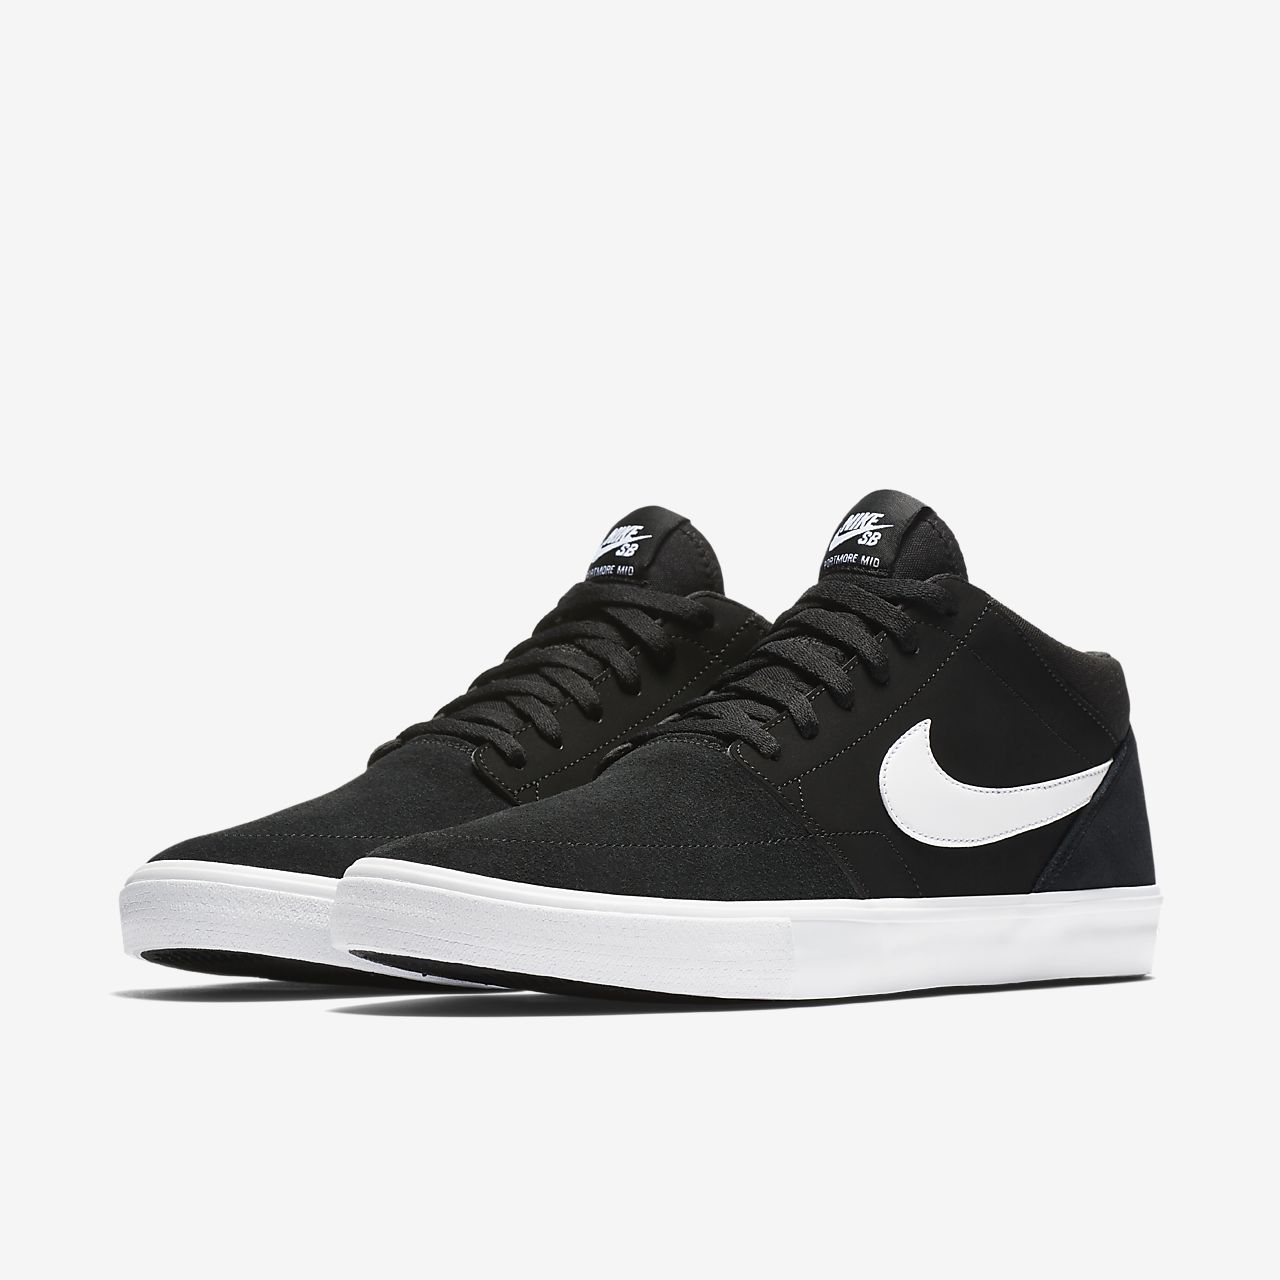 nike sb skate shoes on sale